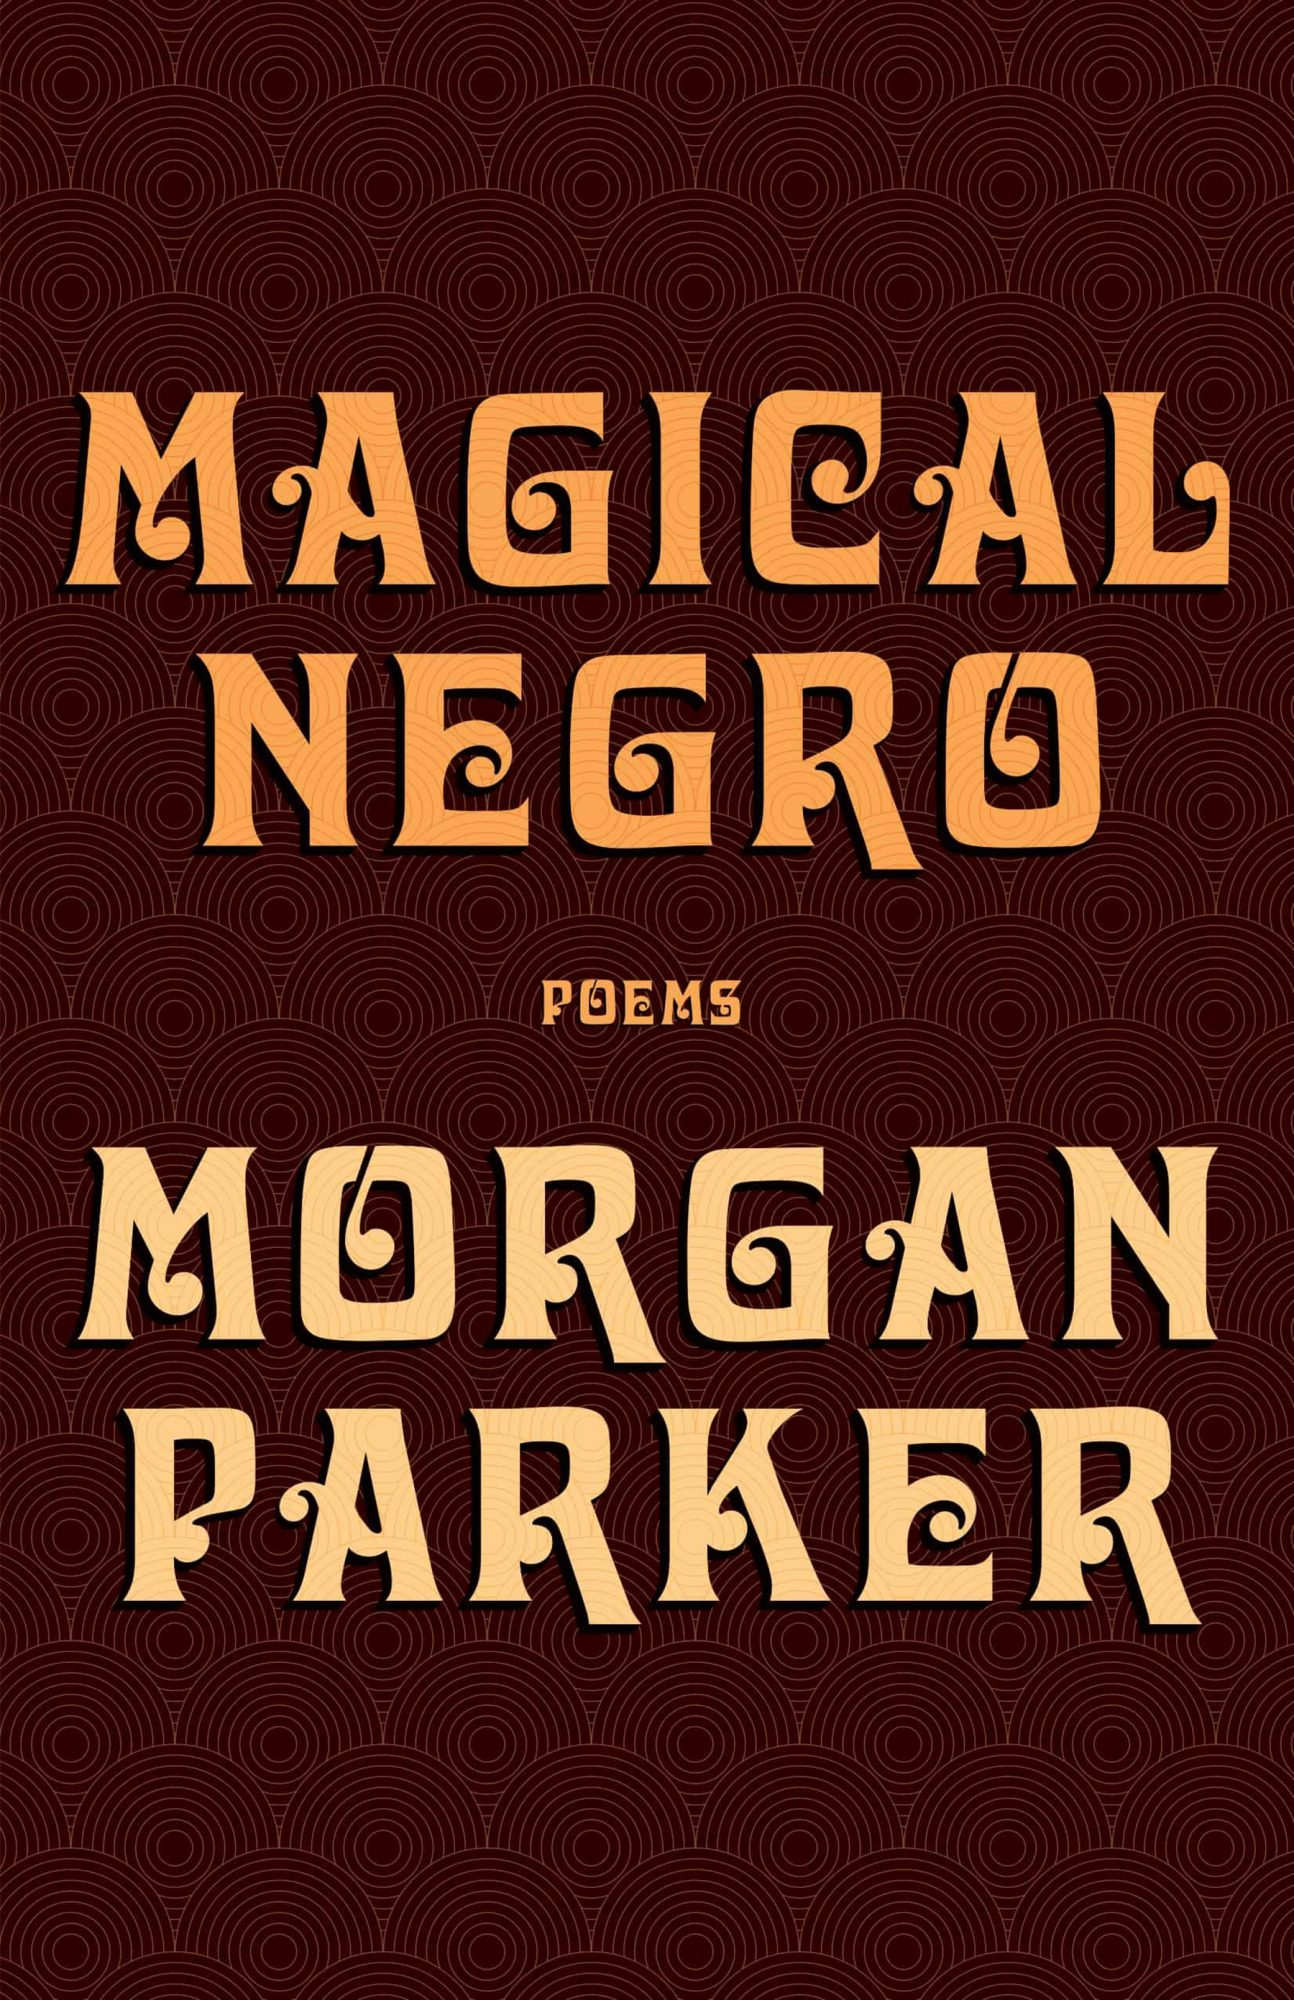 Magical Negro by Morgan ParkerPublisher: Tin House Books